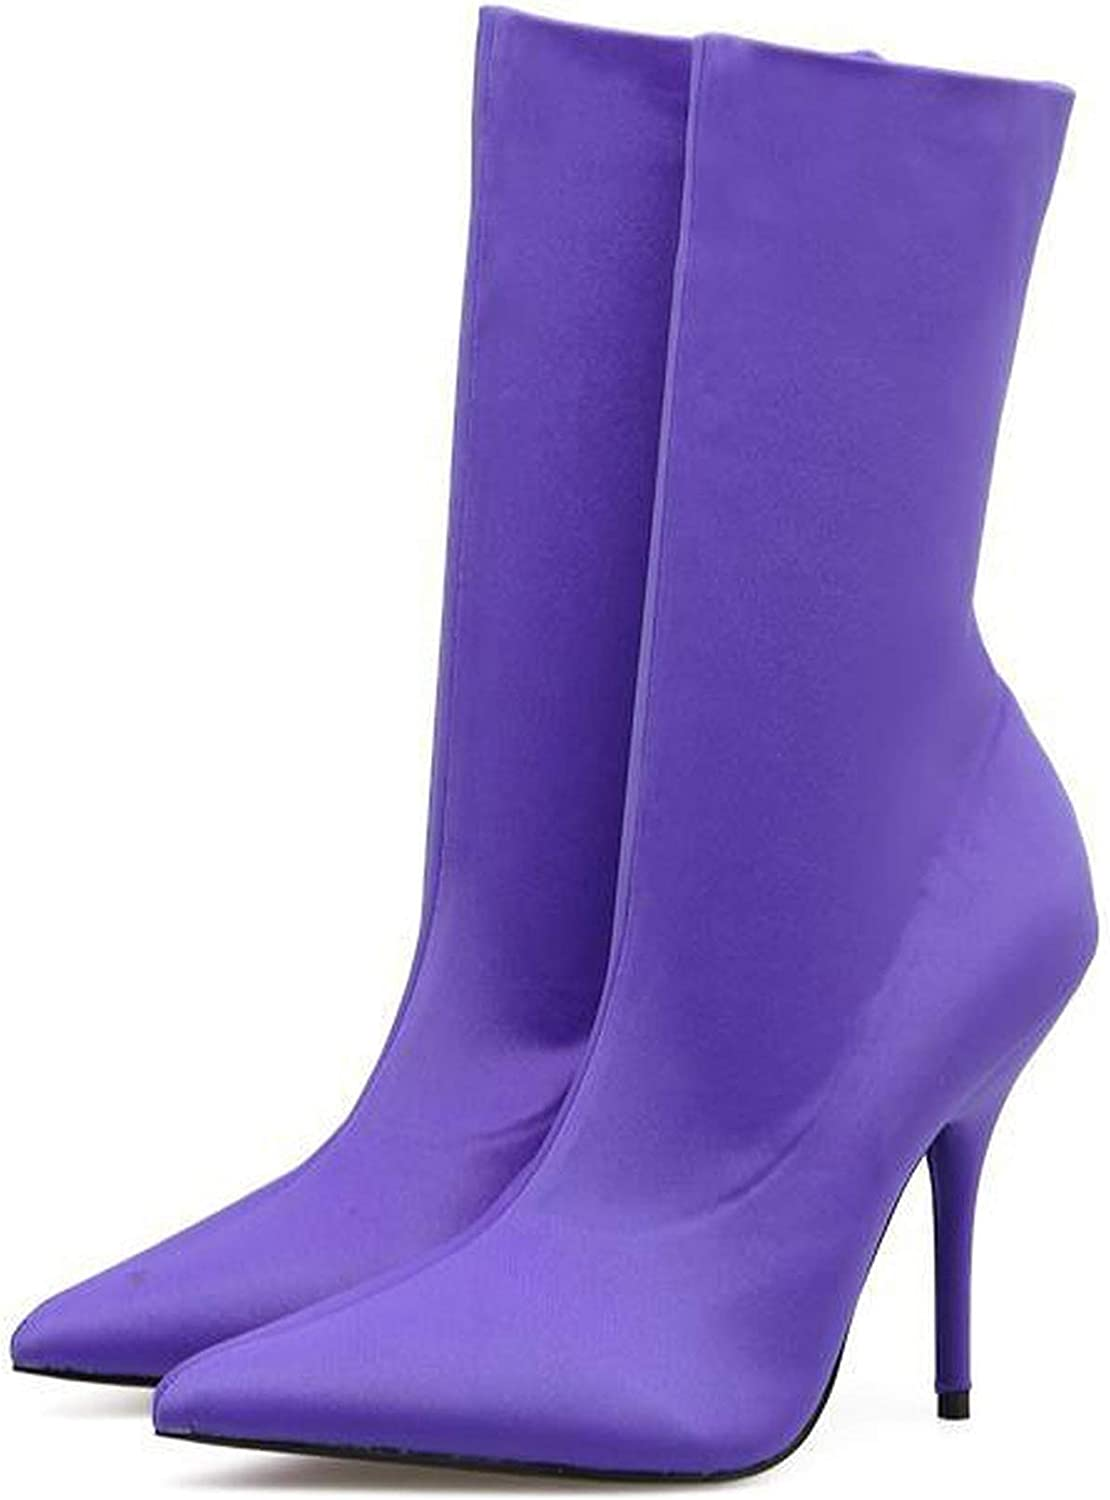 Runway Stretch Fabric Sock Boots Pointy Toe Over-The-Knee Heel Thigh High Boots shoes Sewing Boot,Purple,8